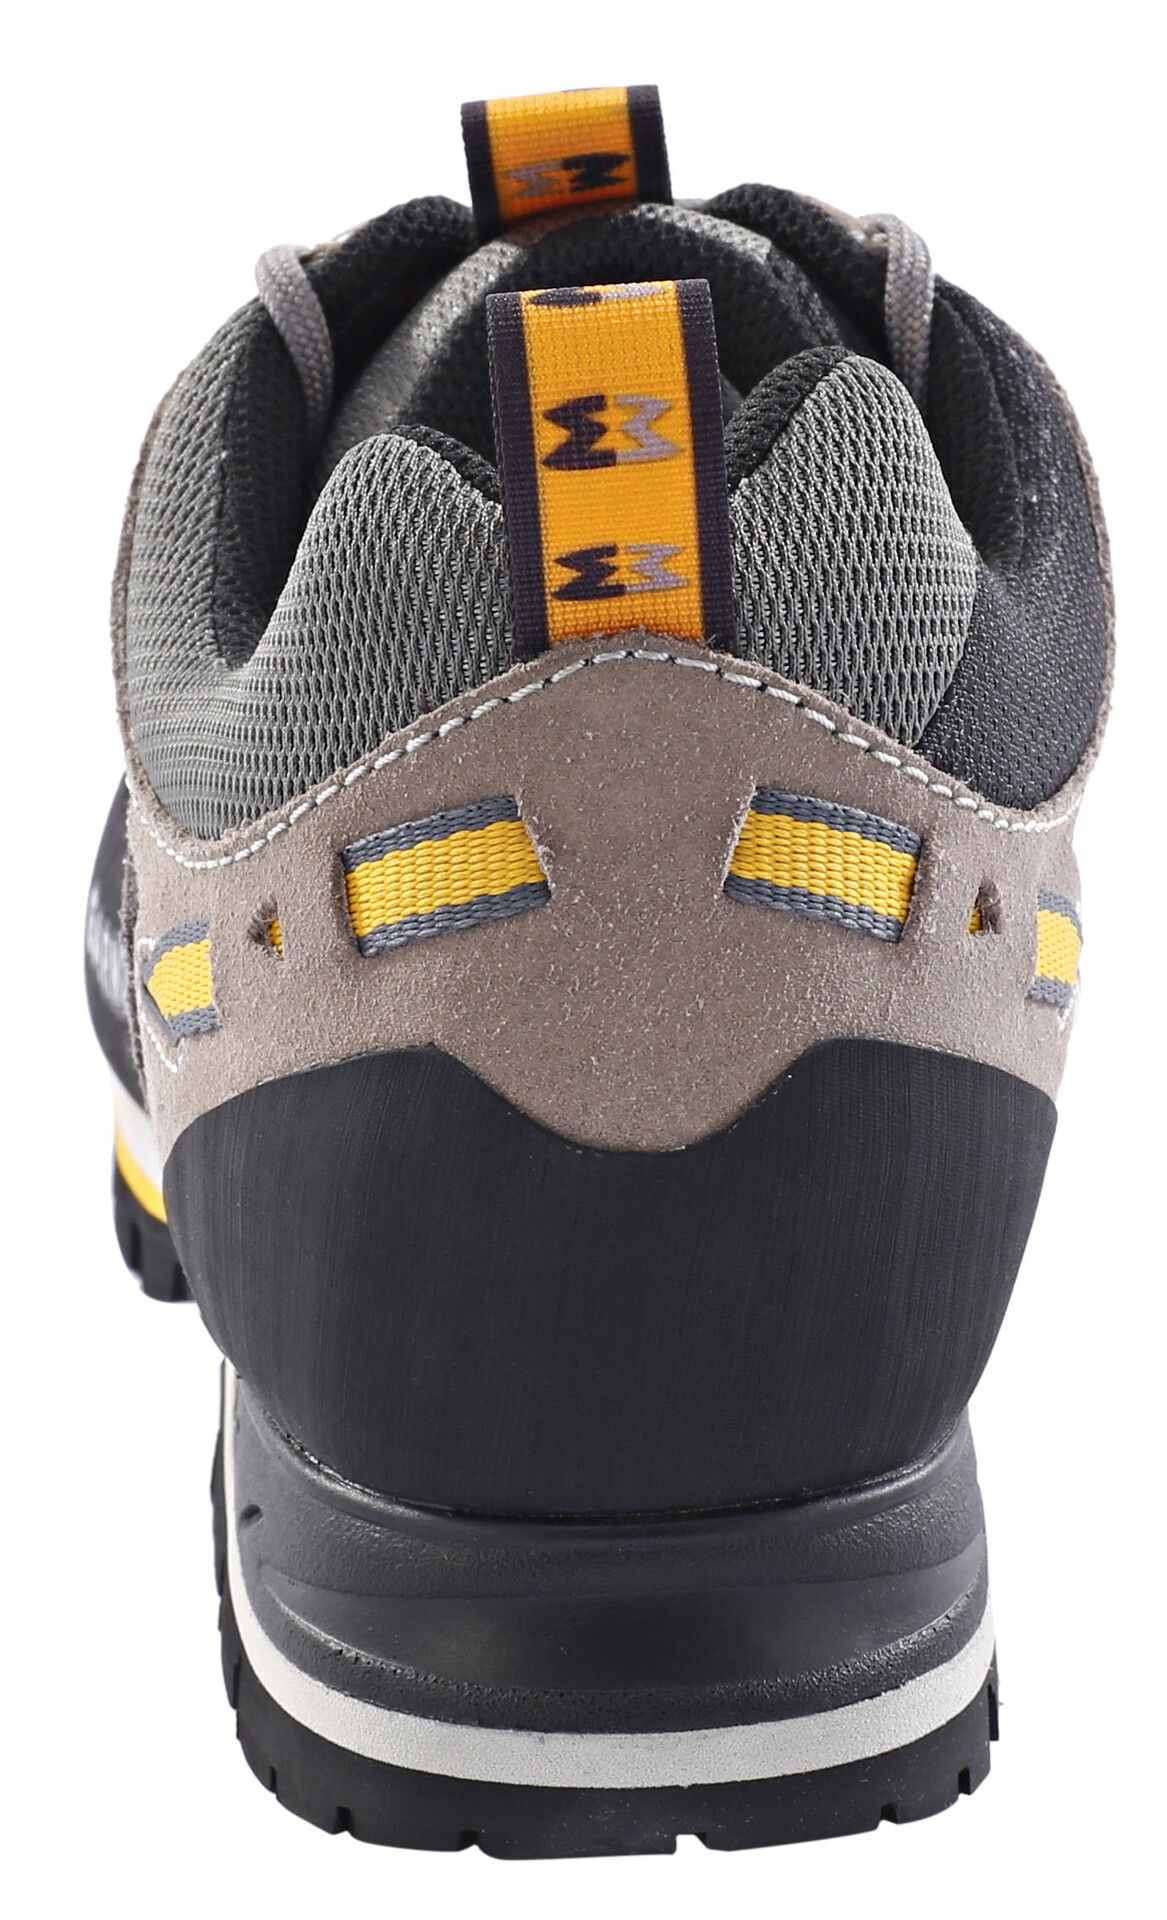 Keen Shoes Homepage